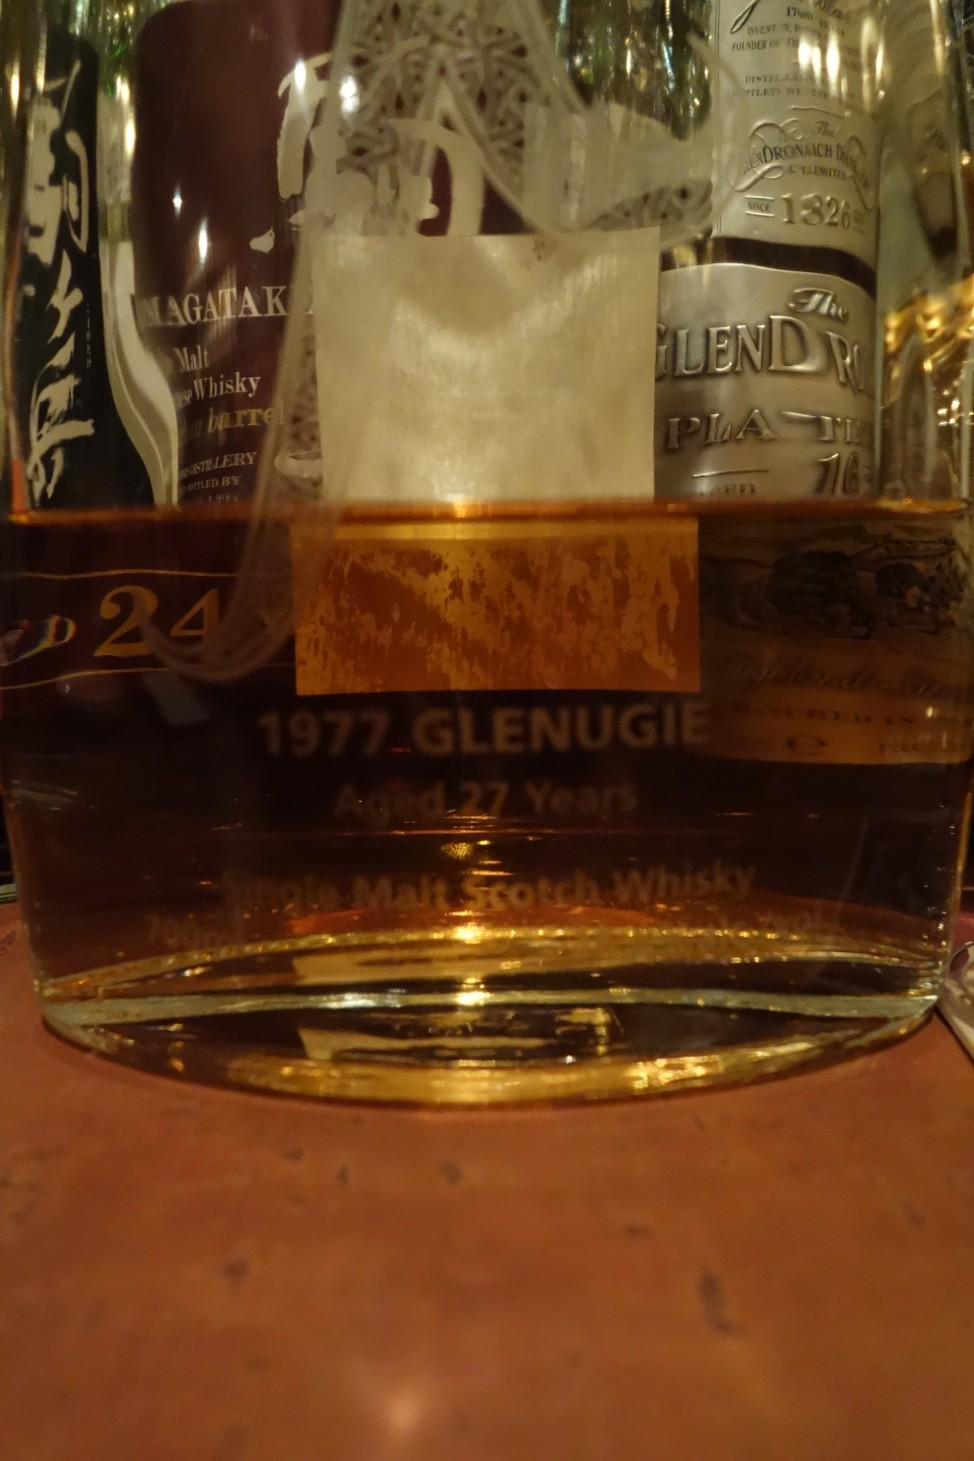 GLENUGIE 1977 27yo CELTIC HEARTLANDS